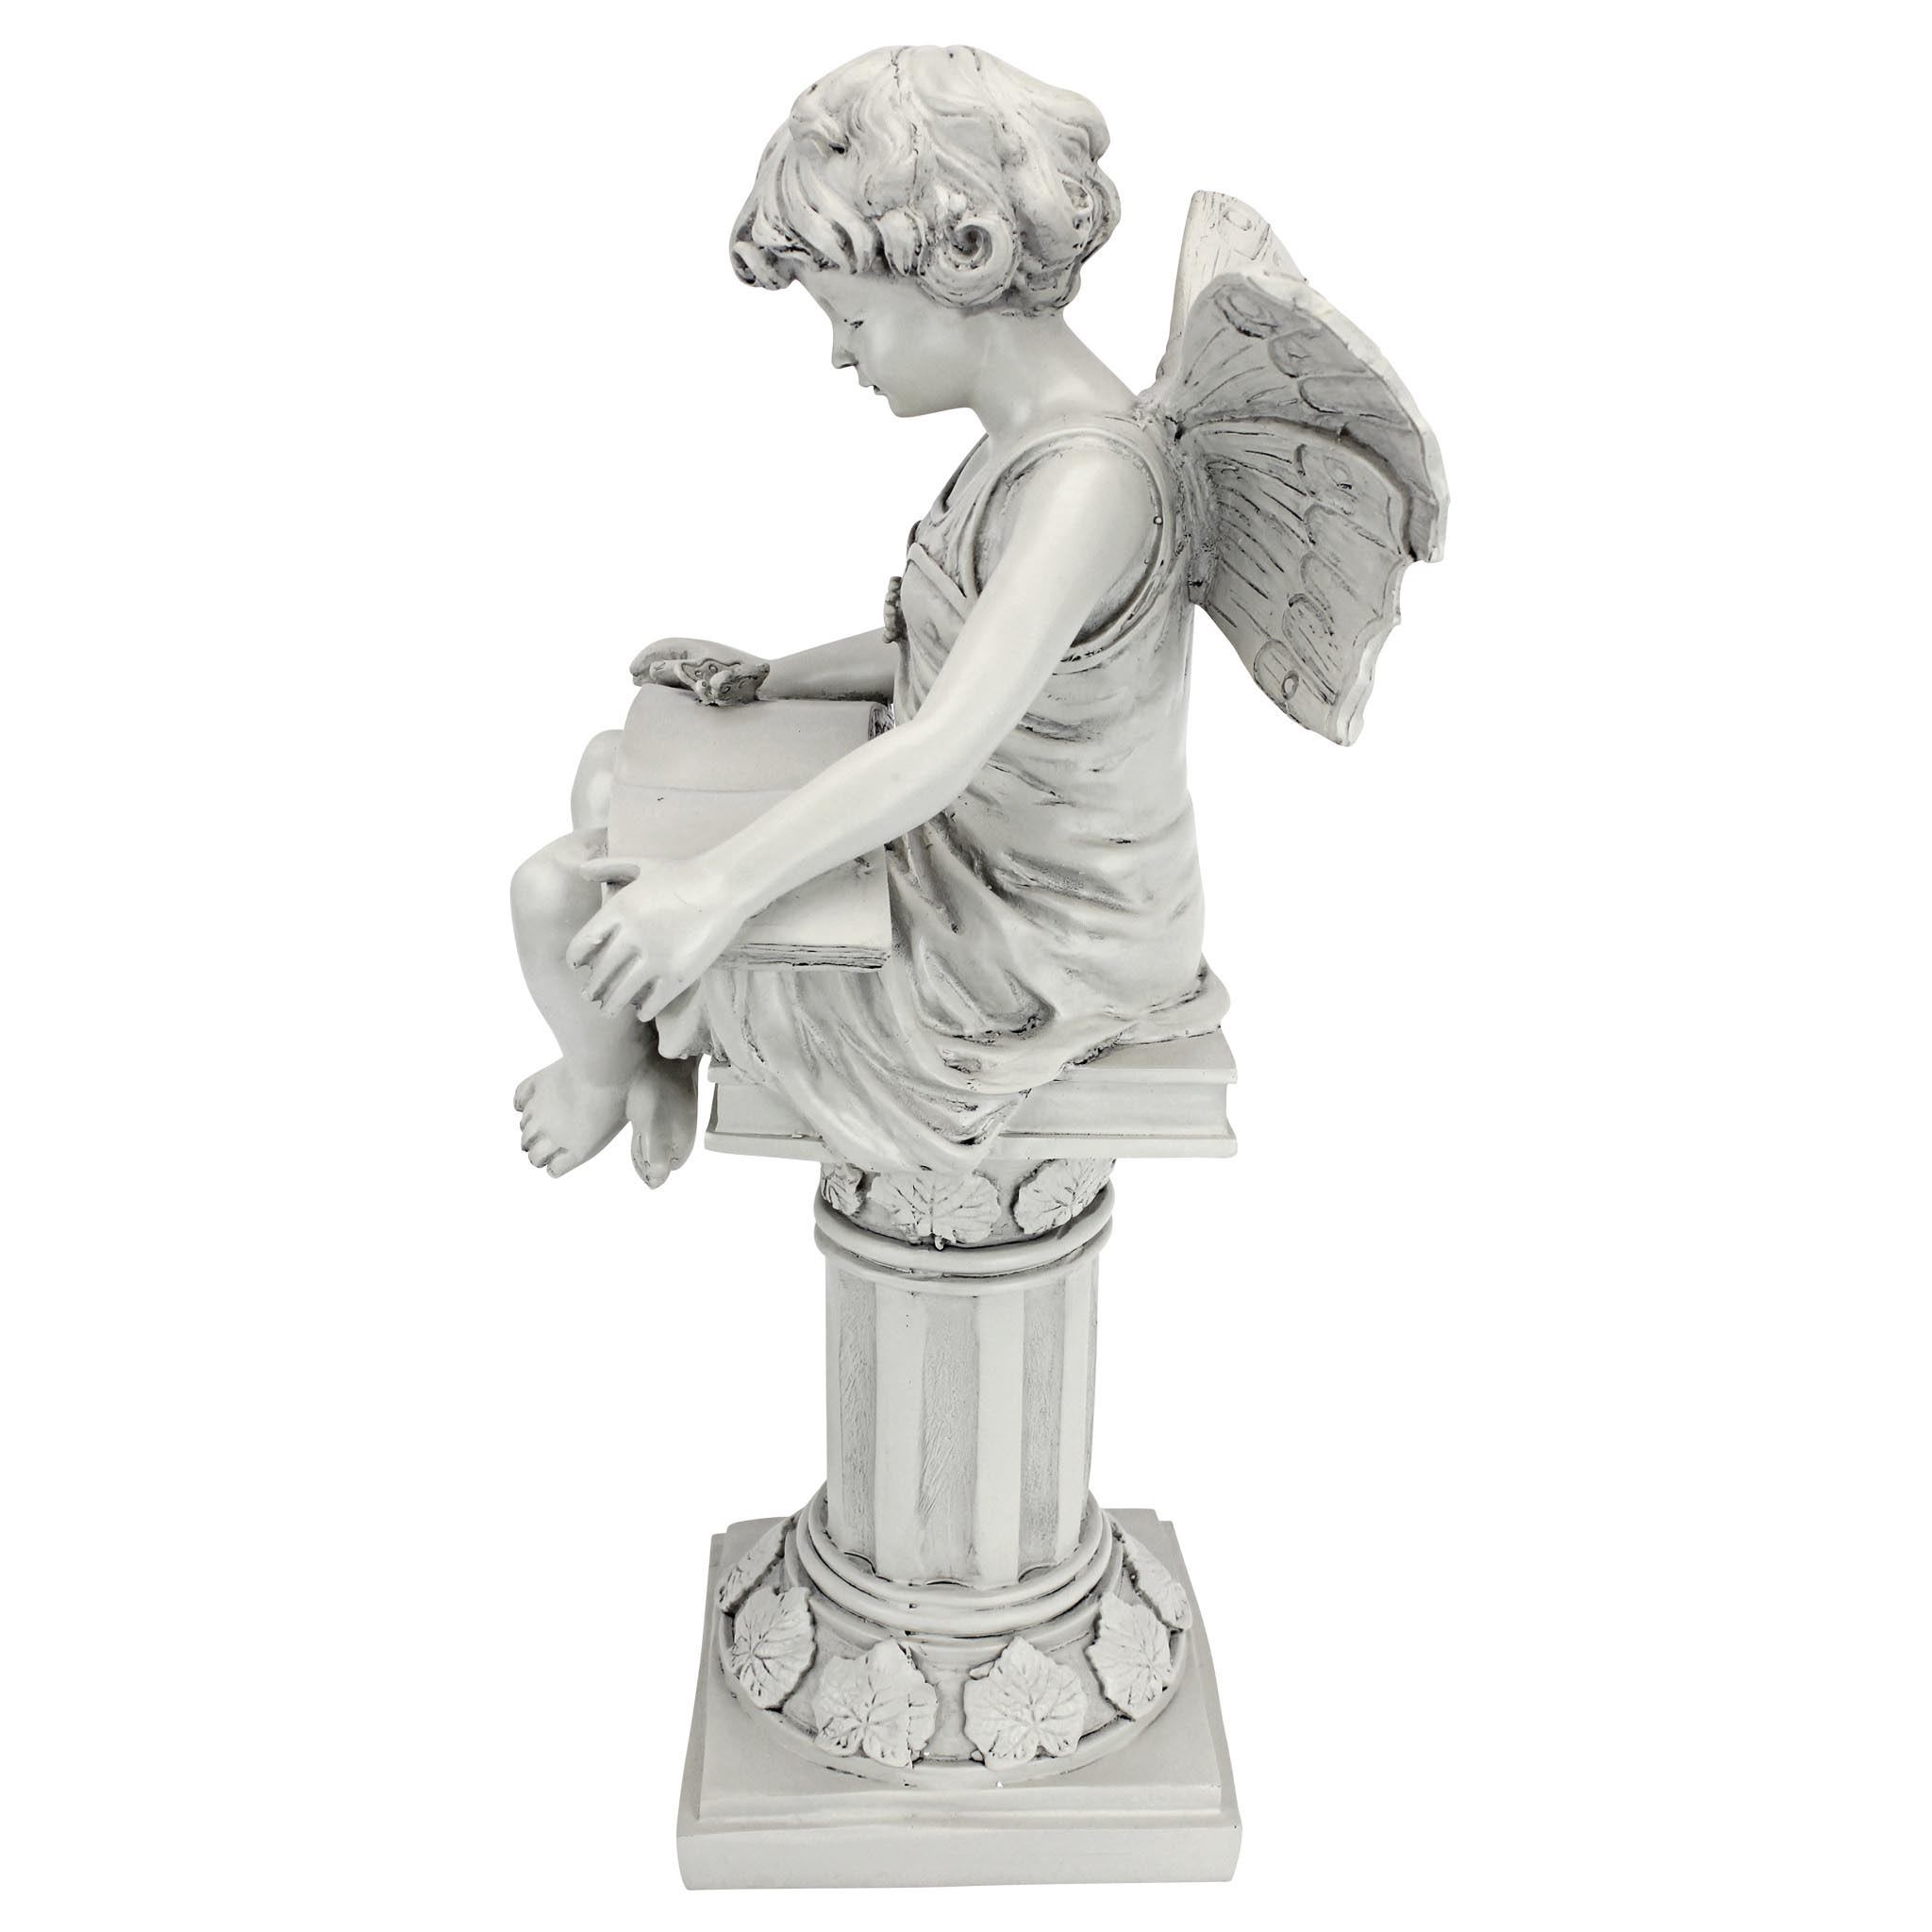 British reading fairy garden statue garden design ideas Reading fairy garden statue